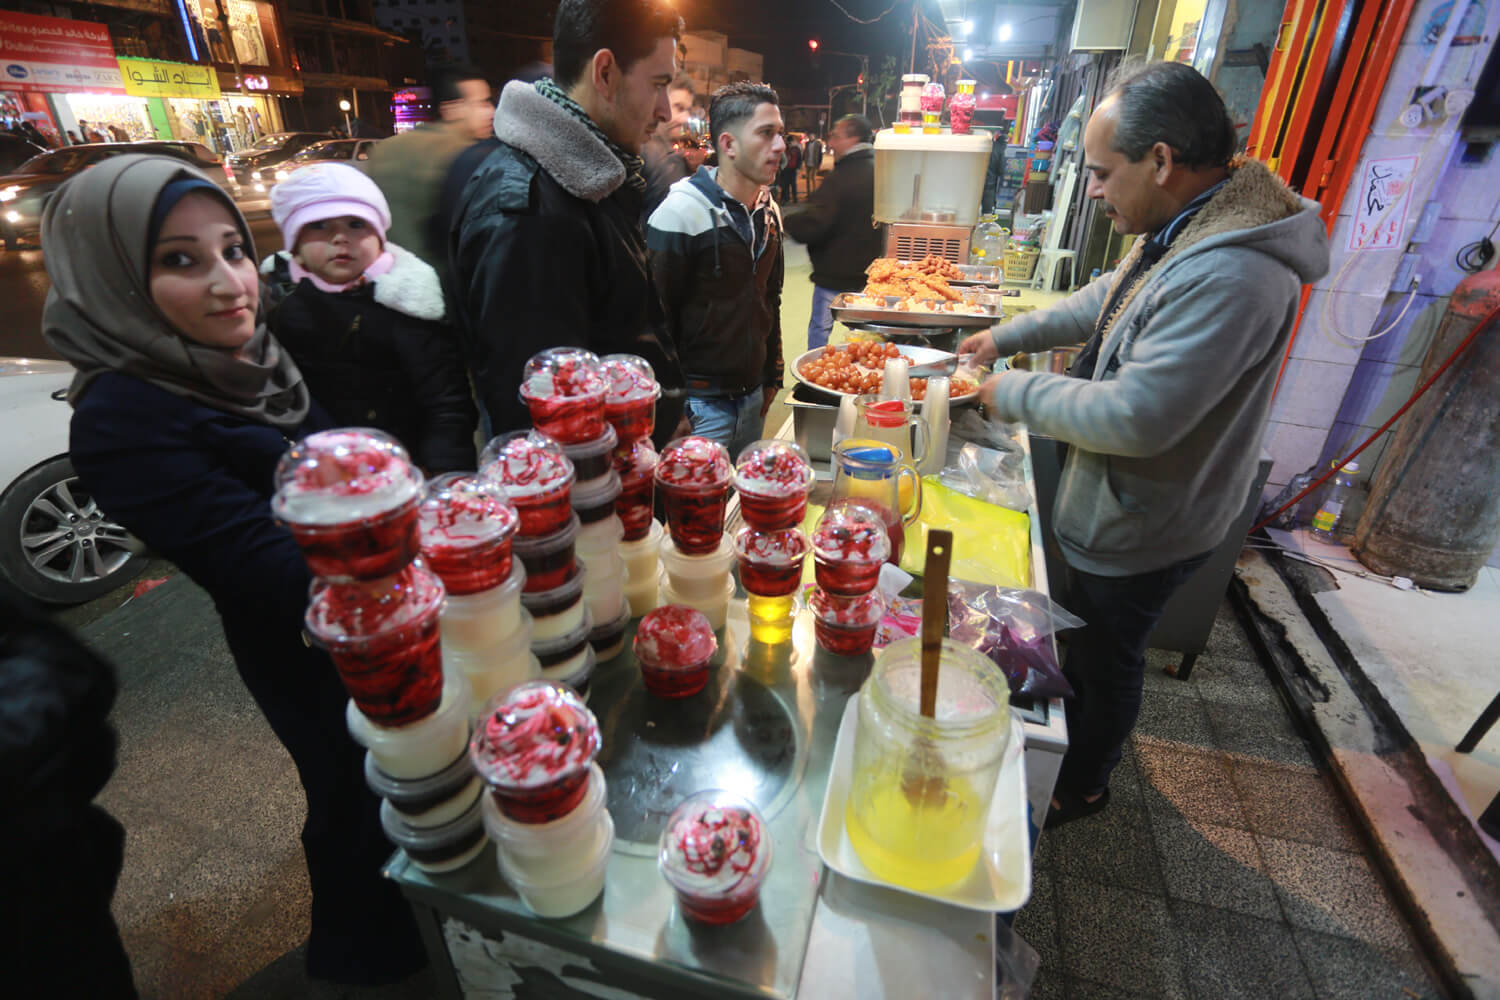 Vendor sells sweets for New Year's Eve (Photo: Mohammed Asad)